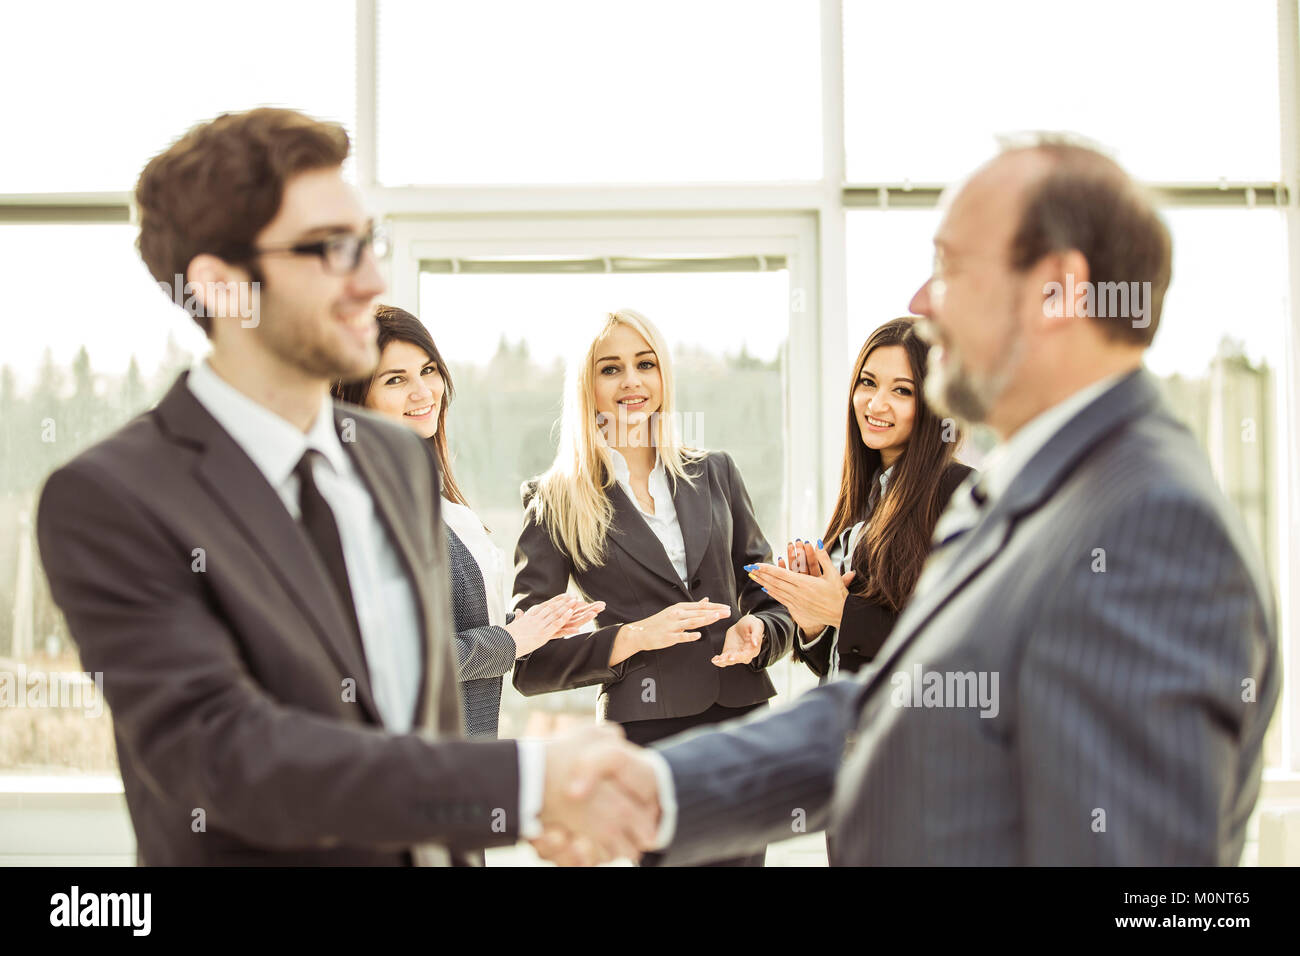 handshake business partners before beginning business negotiations on the background of applauding - Stock Image